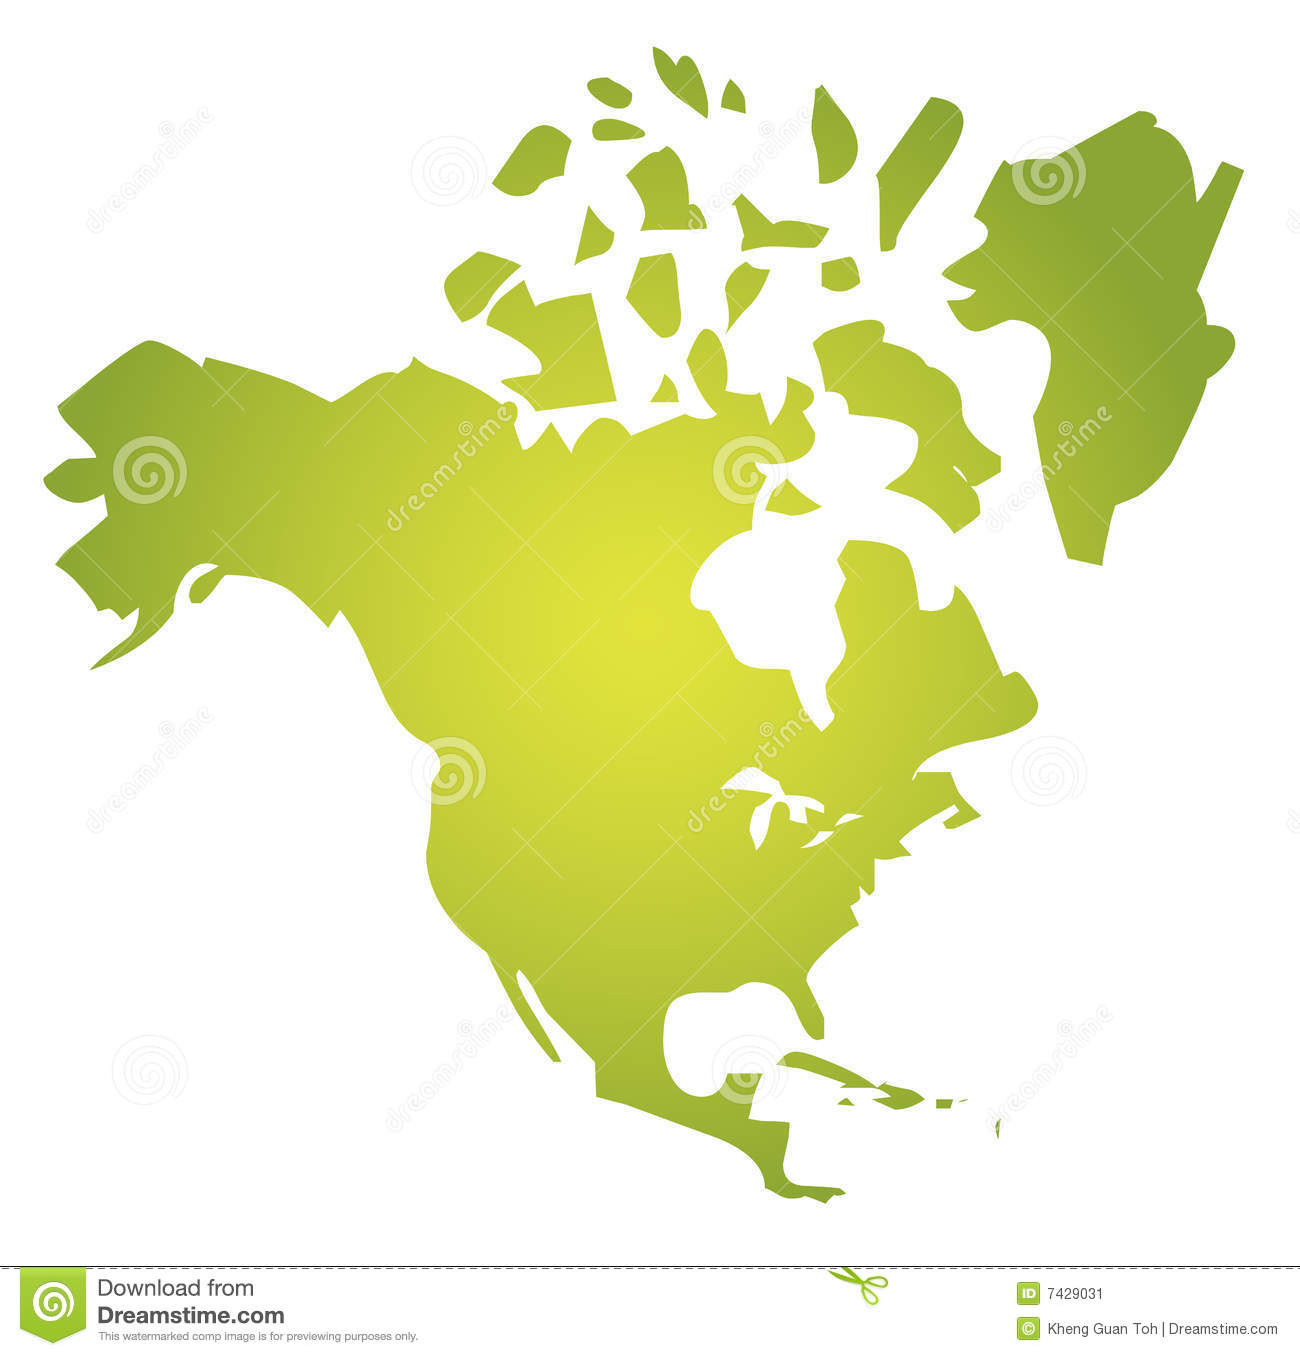 Map North America Stock Image Image - Download map of north america